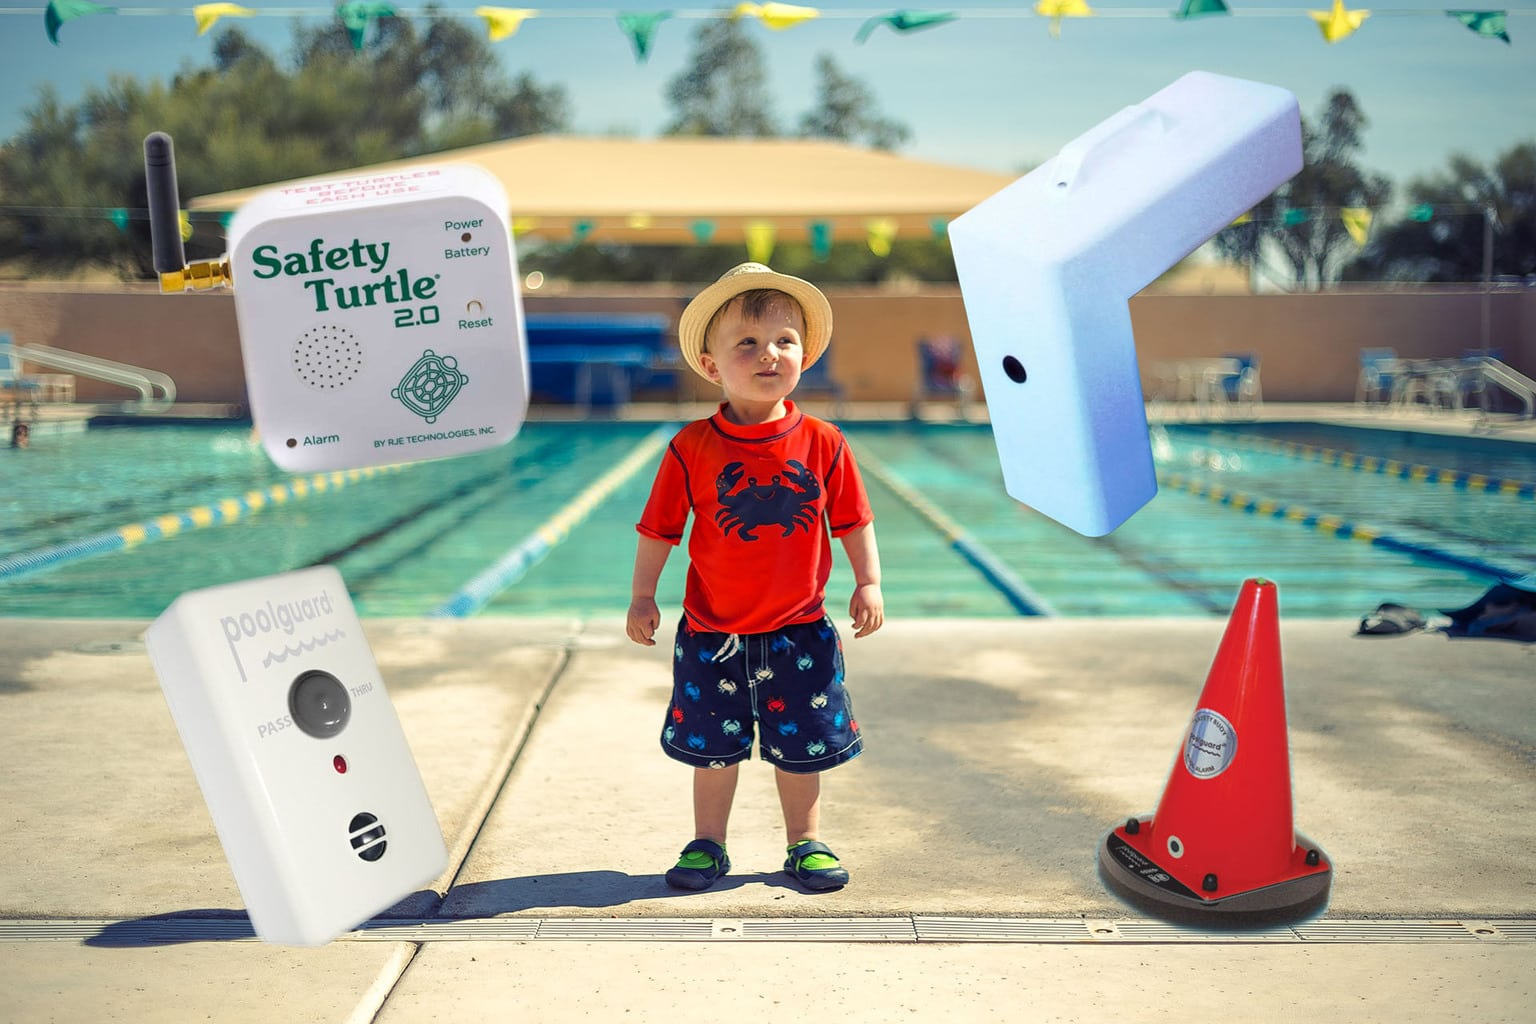 Top 8 Best Pool Alarms & Door Alarms (in & above ground) Review 2019